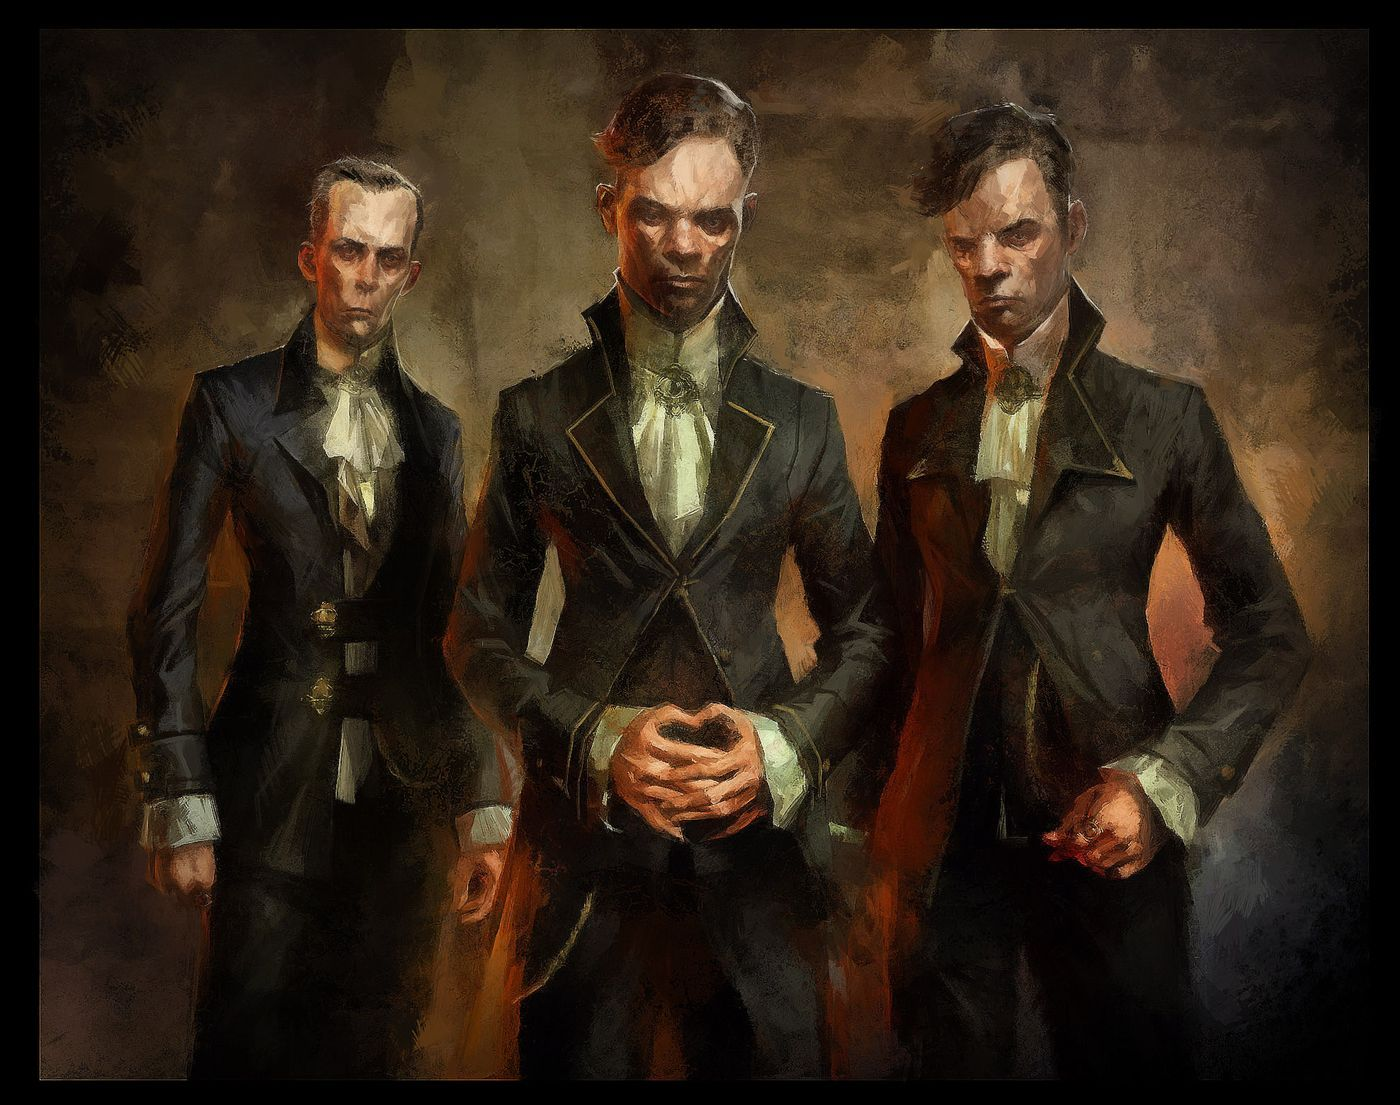 Dishonored Concept Art Has Some Of The